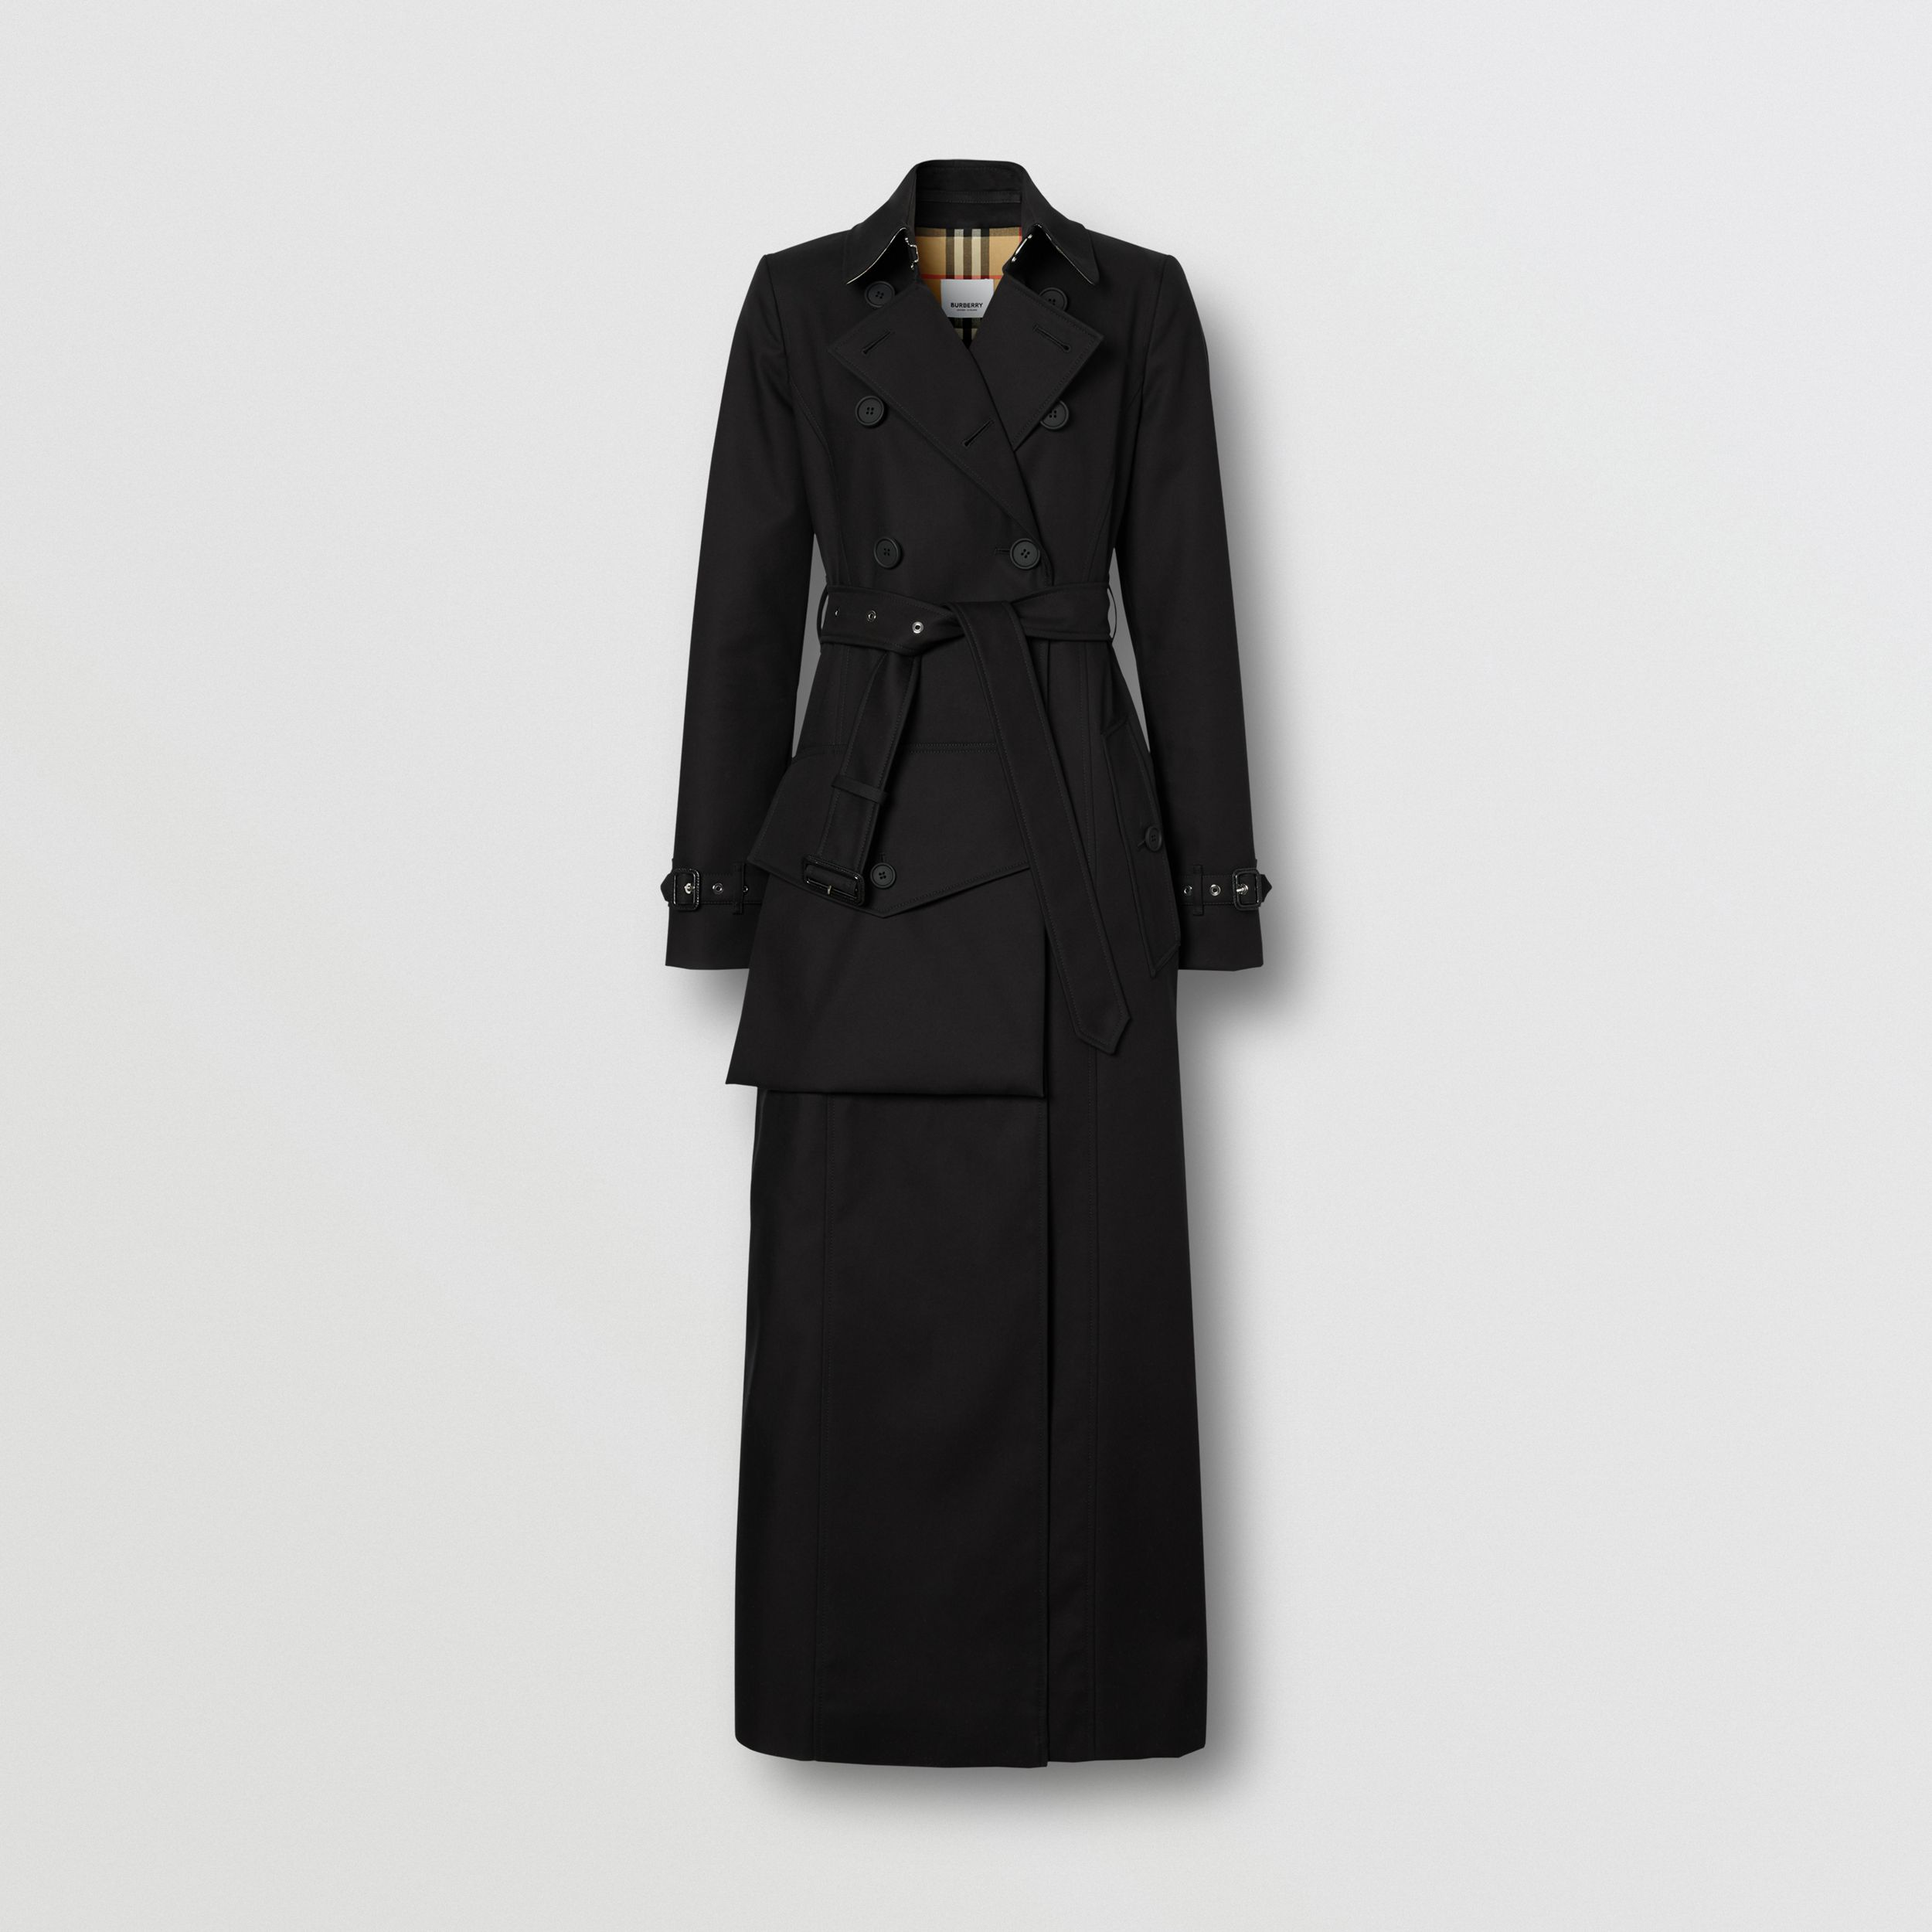 Pocket Detail Cotton Gabardine Trench Coat in Black - Women | Burberry Australia - 4